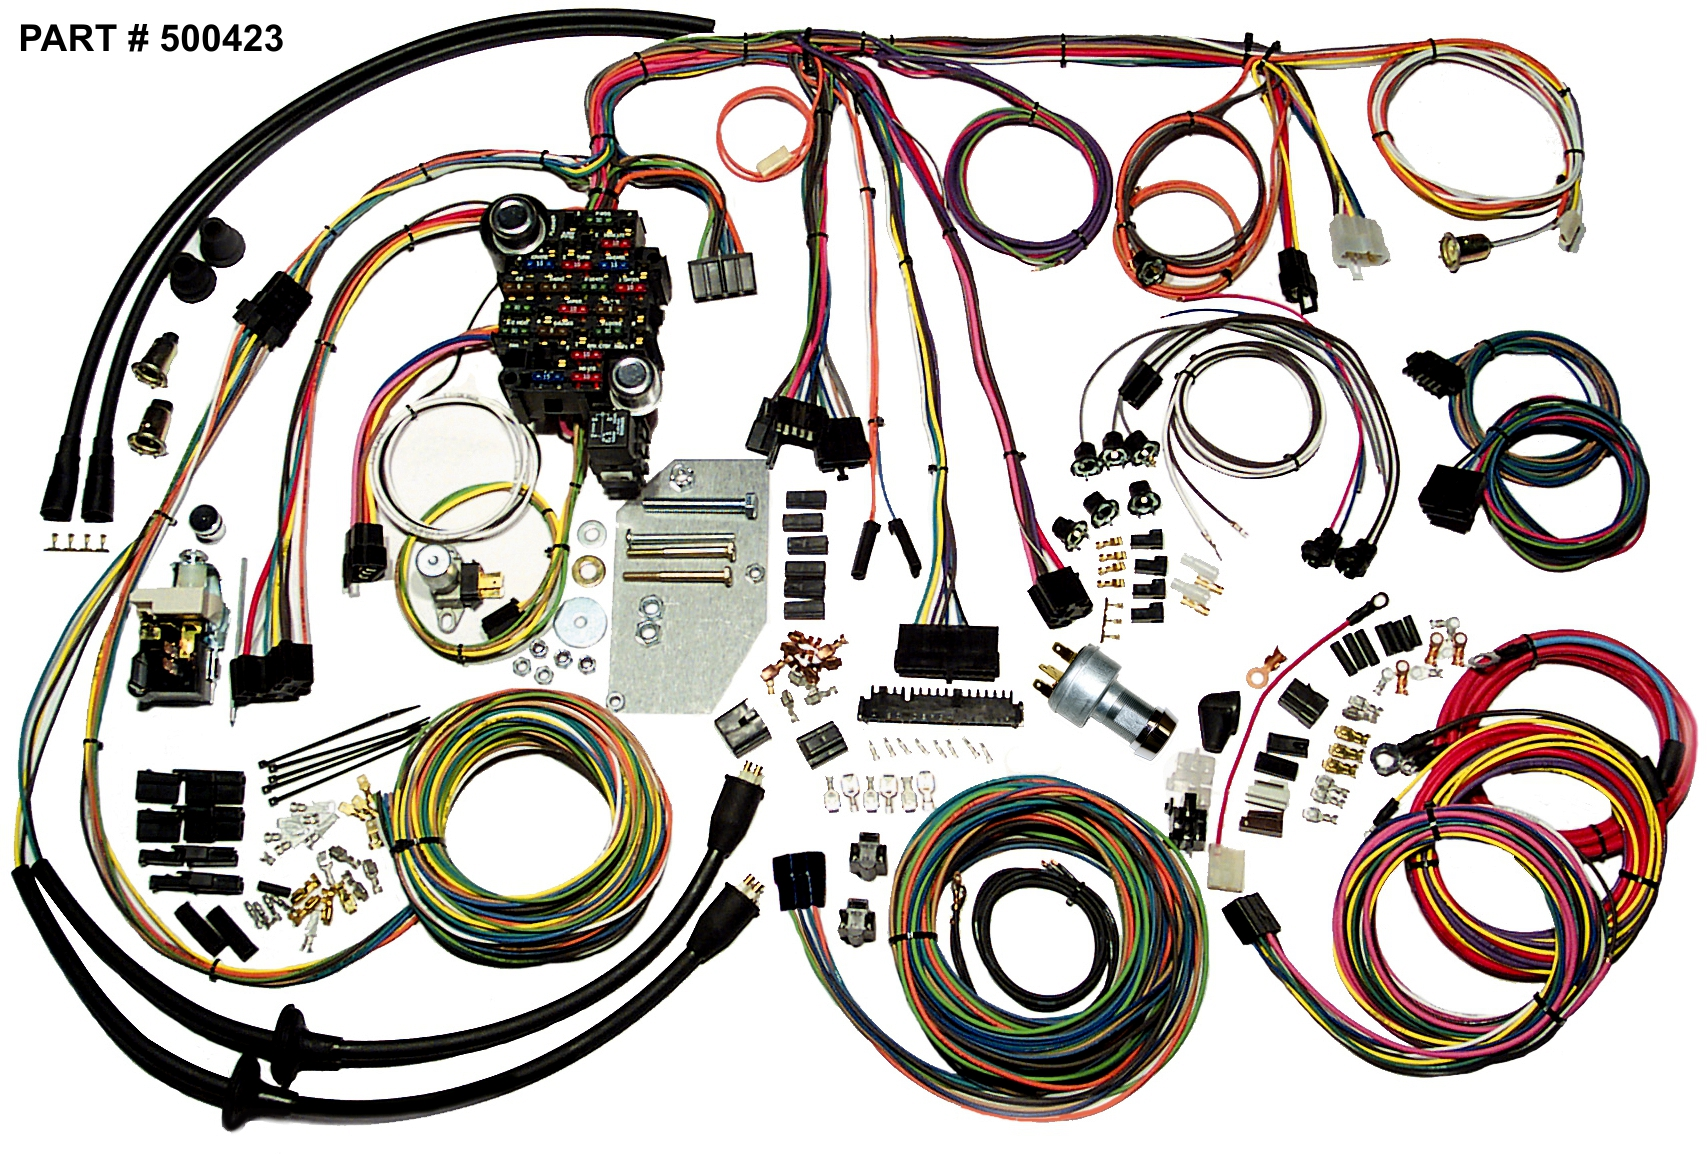 hight resolution of old car wiring harnesses wiring diagram structure wiring harness manufacturer uk